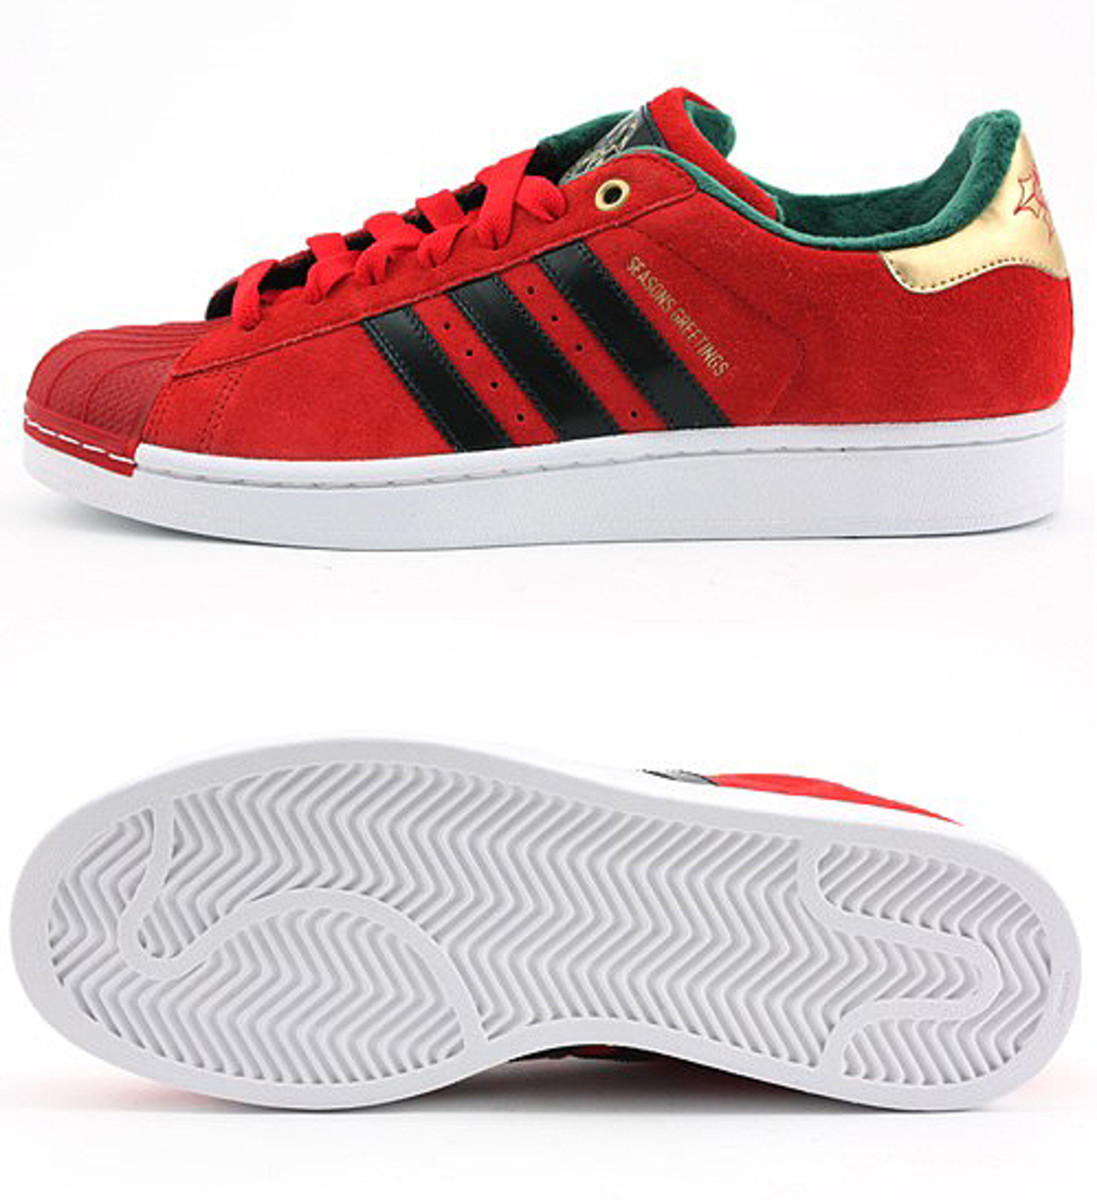 adidas-originals-superstar-2-seasons-greetings-02